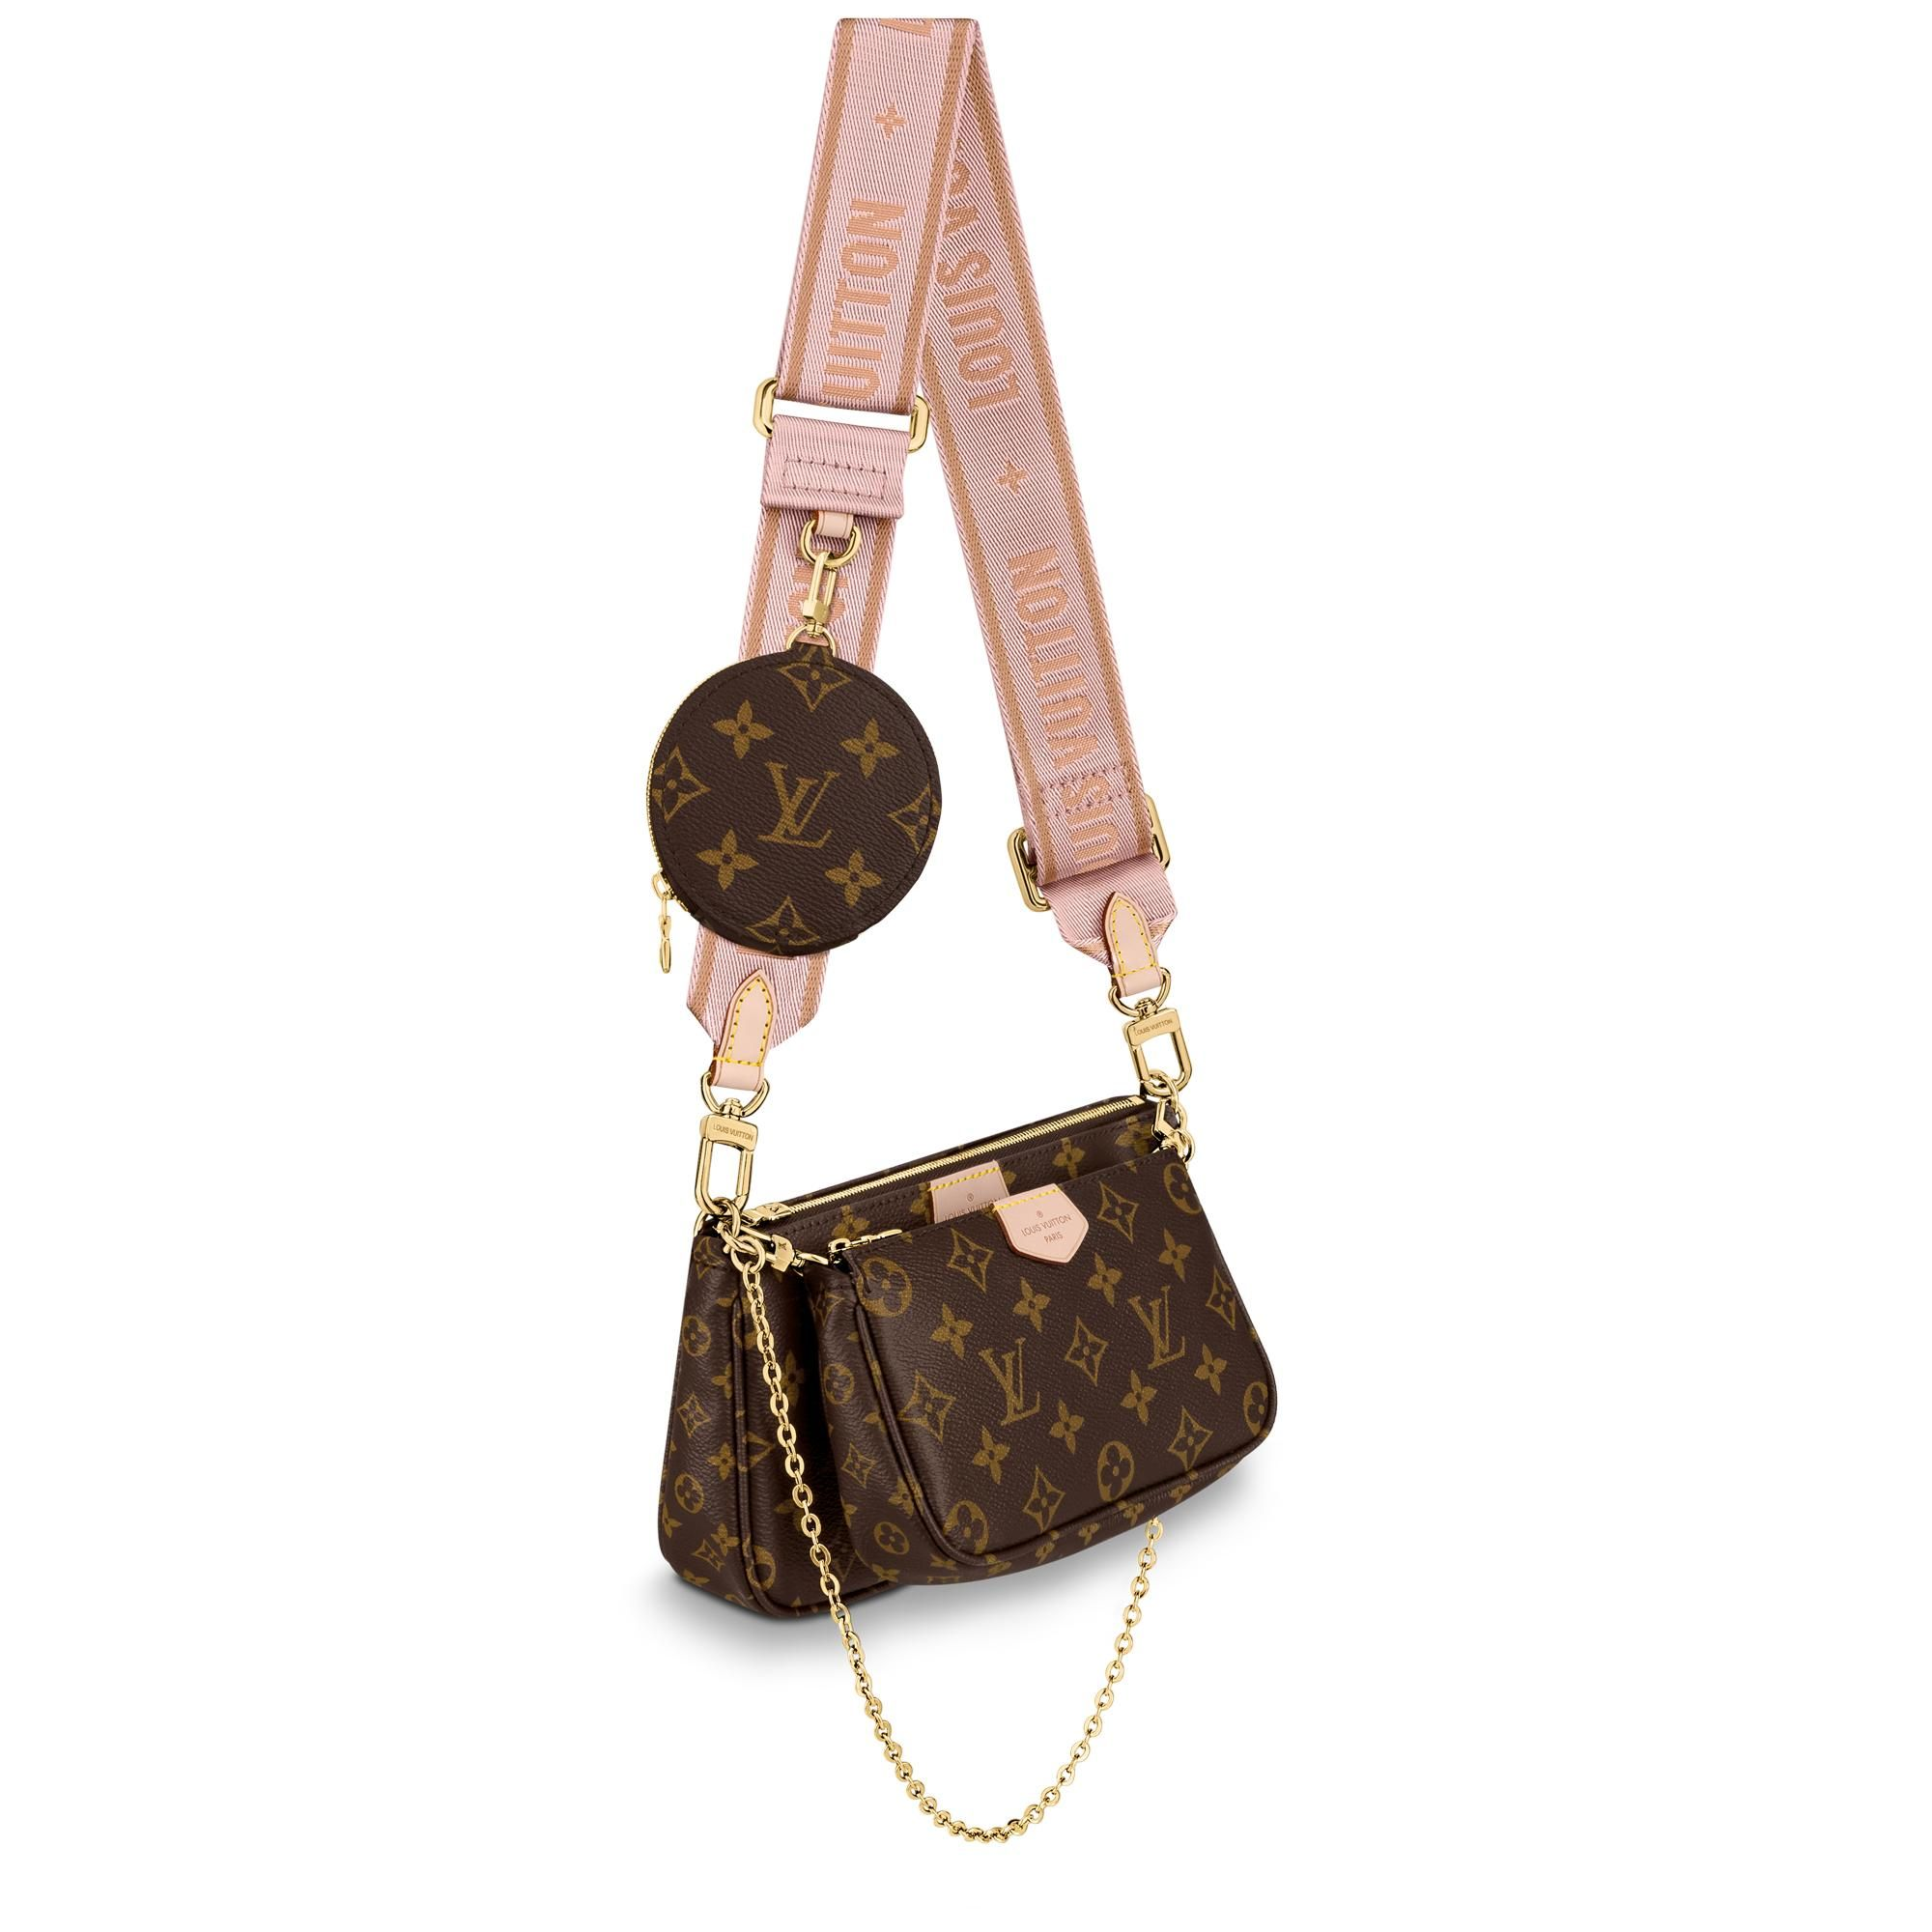 The multi pochette accessoires is a hybrid cross-body bag with multiple pockets and compartments that brings together a pochette accessoires, a mini pochette accessoires and a round coin purse. Fashioned from monogram canvas with a mini monogram pattern on the sides of the two pochettes, it has both a removable gold-tone chain and an adjustable louis vuitton inscribed jacquard strap for multiple carrying options.